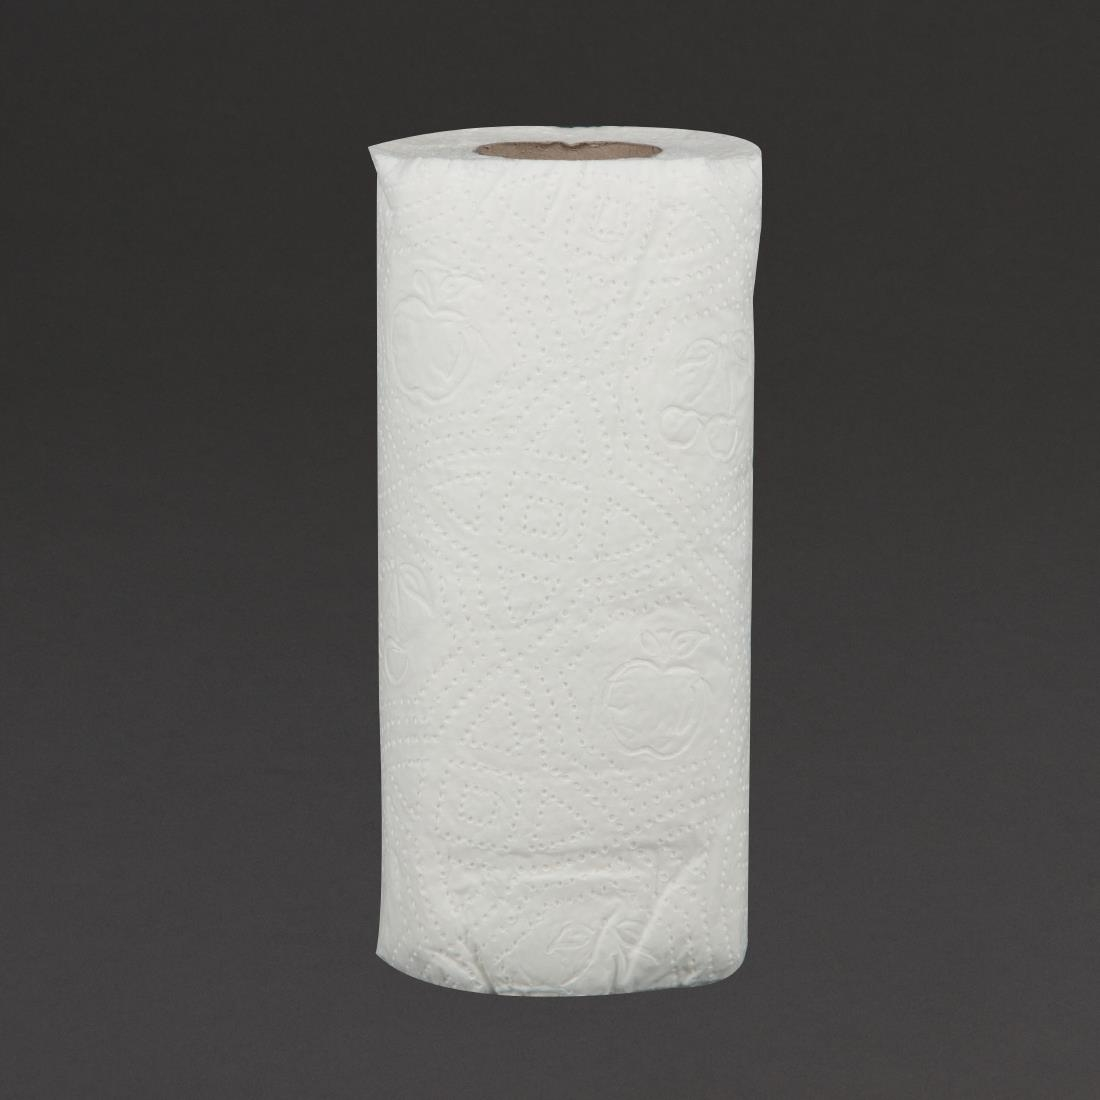 Image of Jantex Kitchen Rolls White 2-Ply 11.5m (Pack of 24) Pack of 24